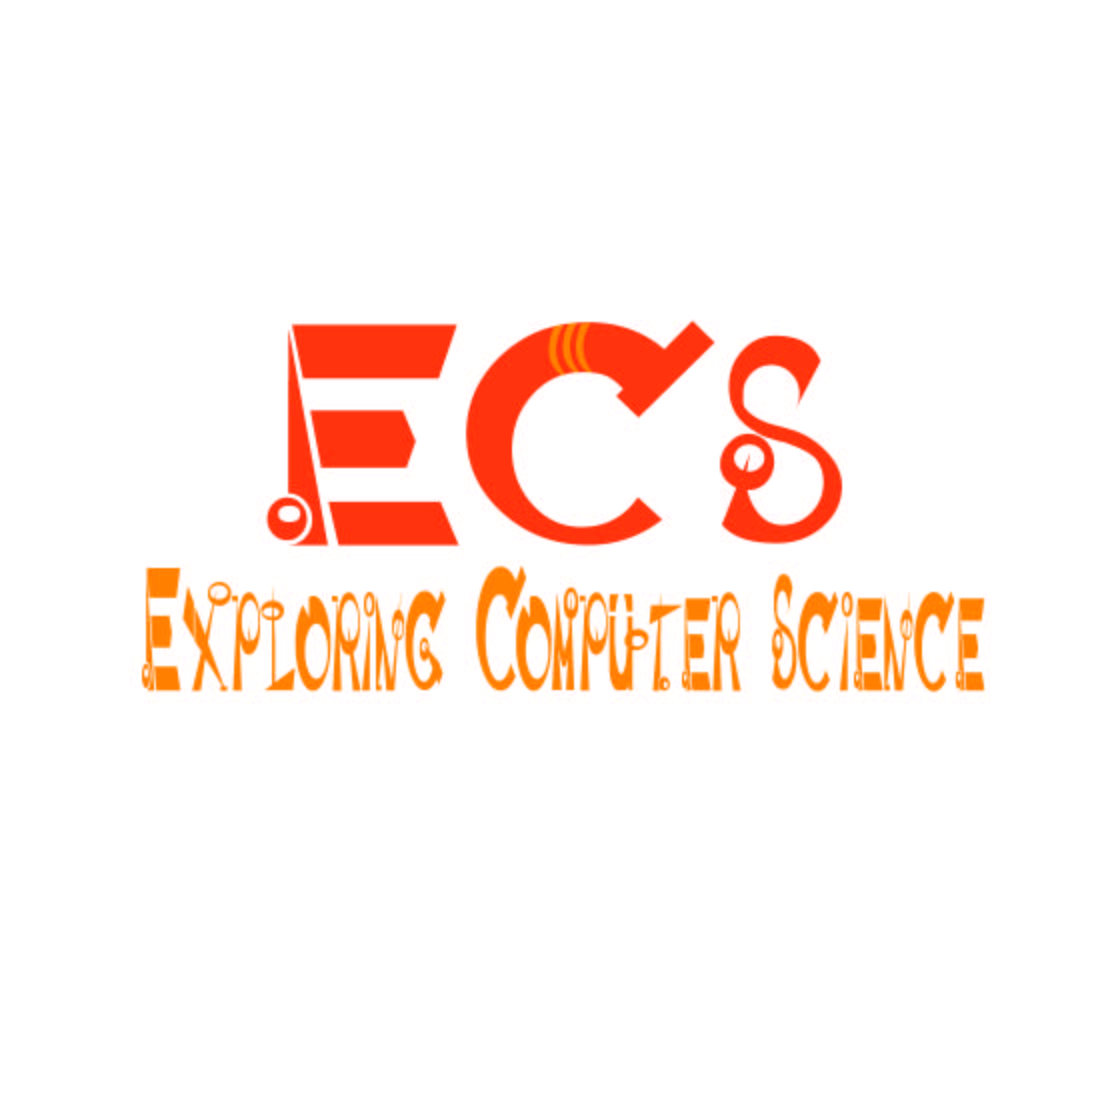 Logo Design by Saunter - Entry No. 48 in the Logo Design Contest ECS - Exploring Computer Science.